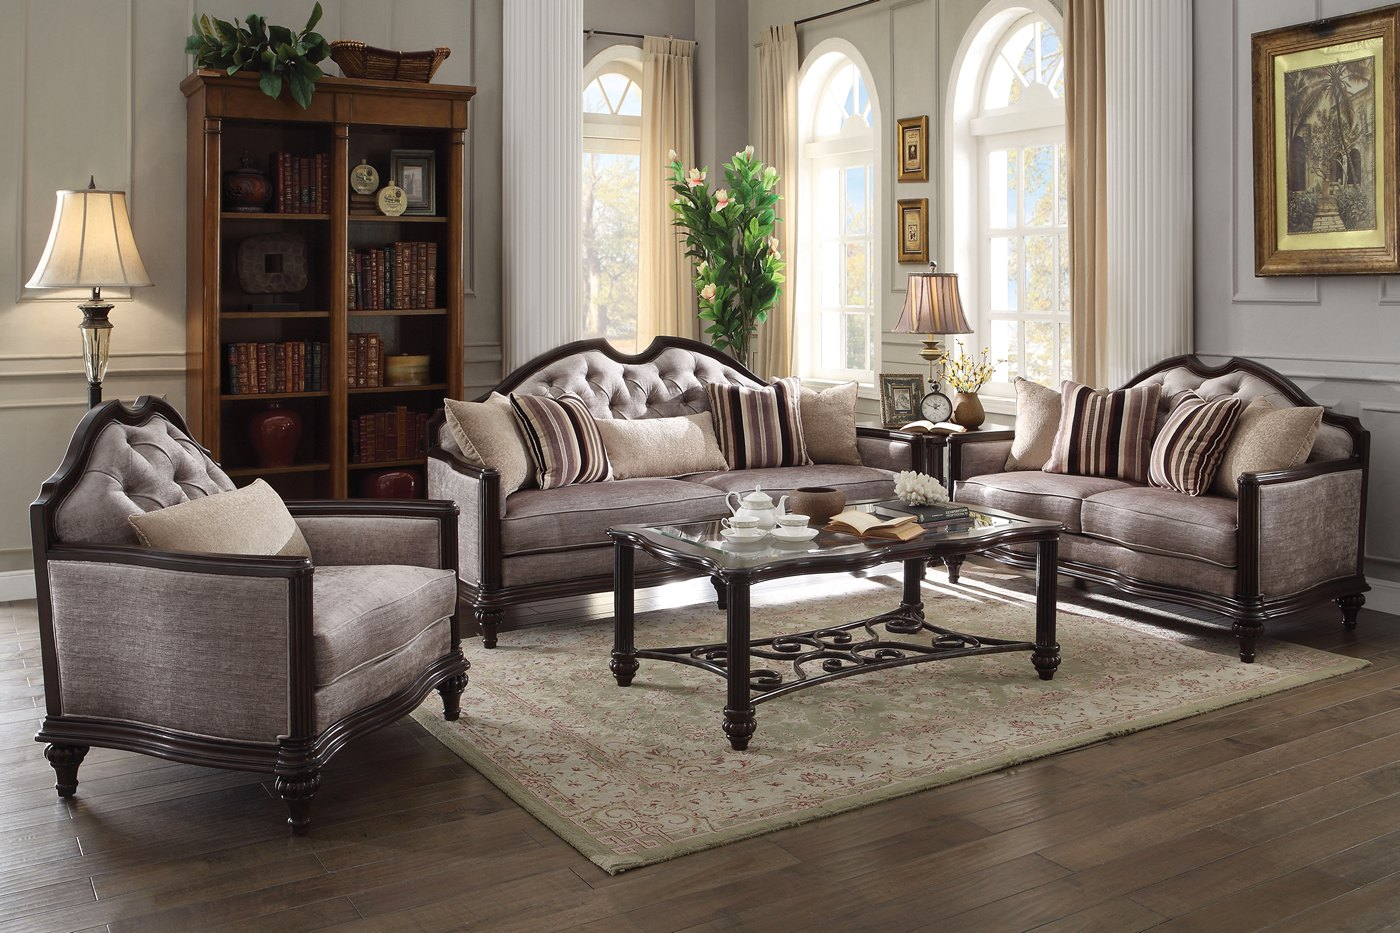 York Classic Light Grey Fabric Sofa & Loveseat Set In Dark